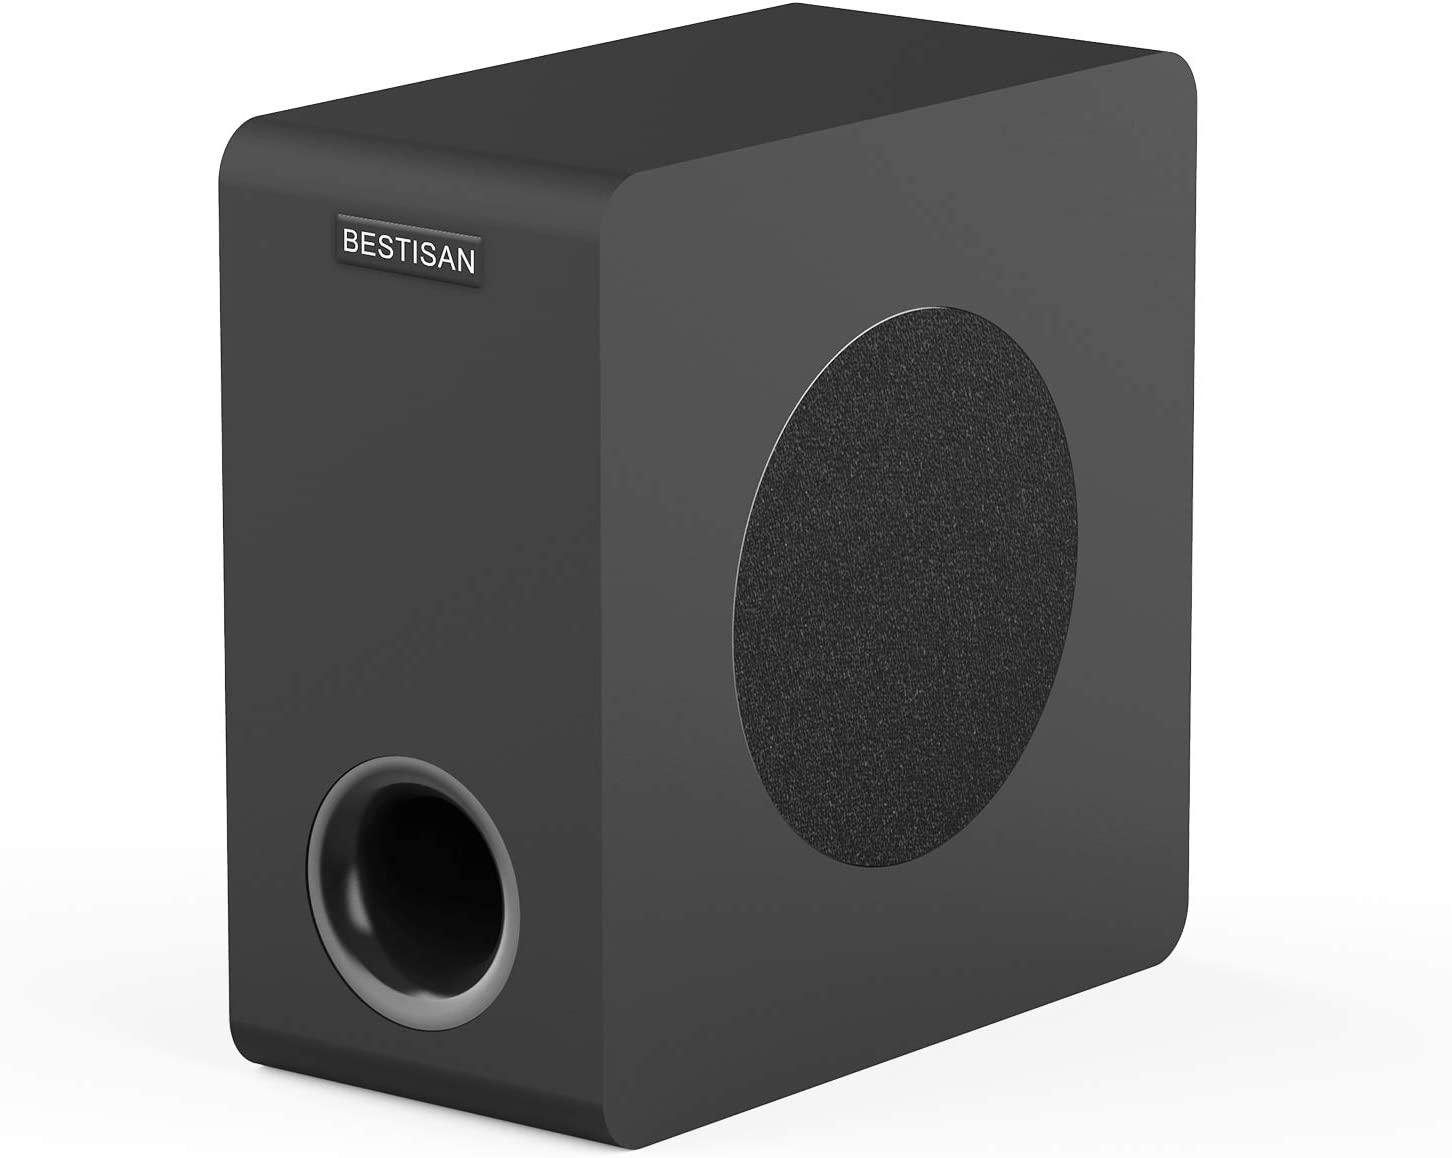 Powered Subwoofer, Bestisan 6.5'' Bluetooth Home Audio Subwoofer Sub, Deep Bass Response in Compact Design, Easy Setup with Home Theater Systems/TV/Speakers/PC/Tablet/Phone/DVD, 2021 Model